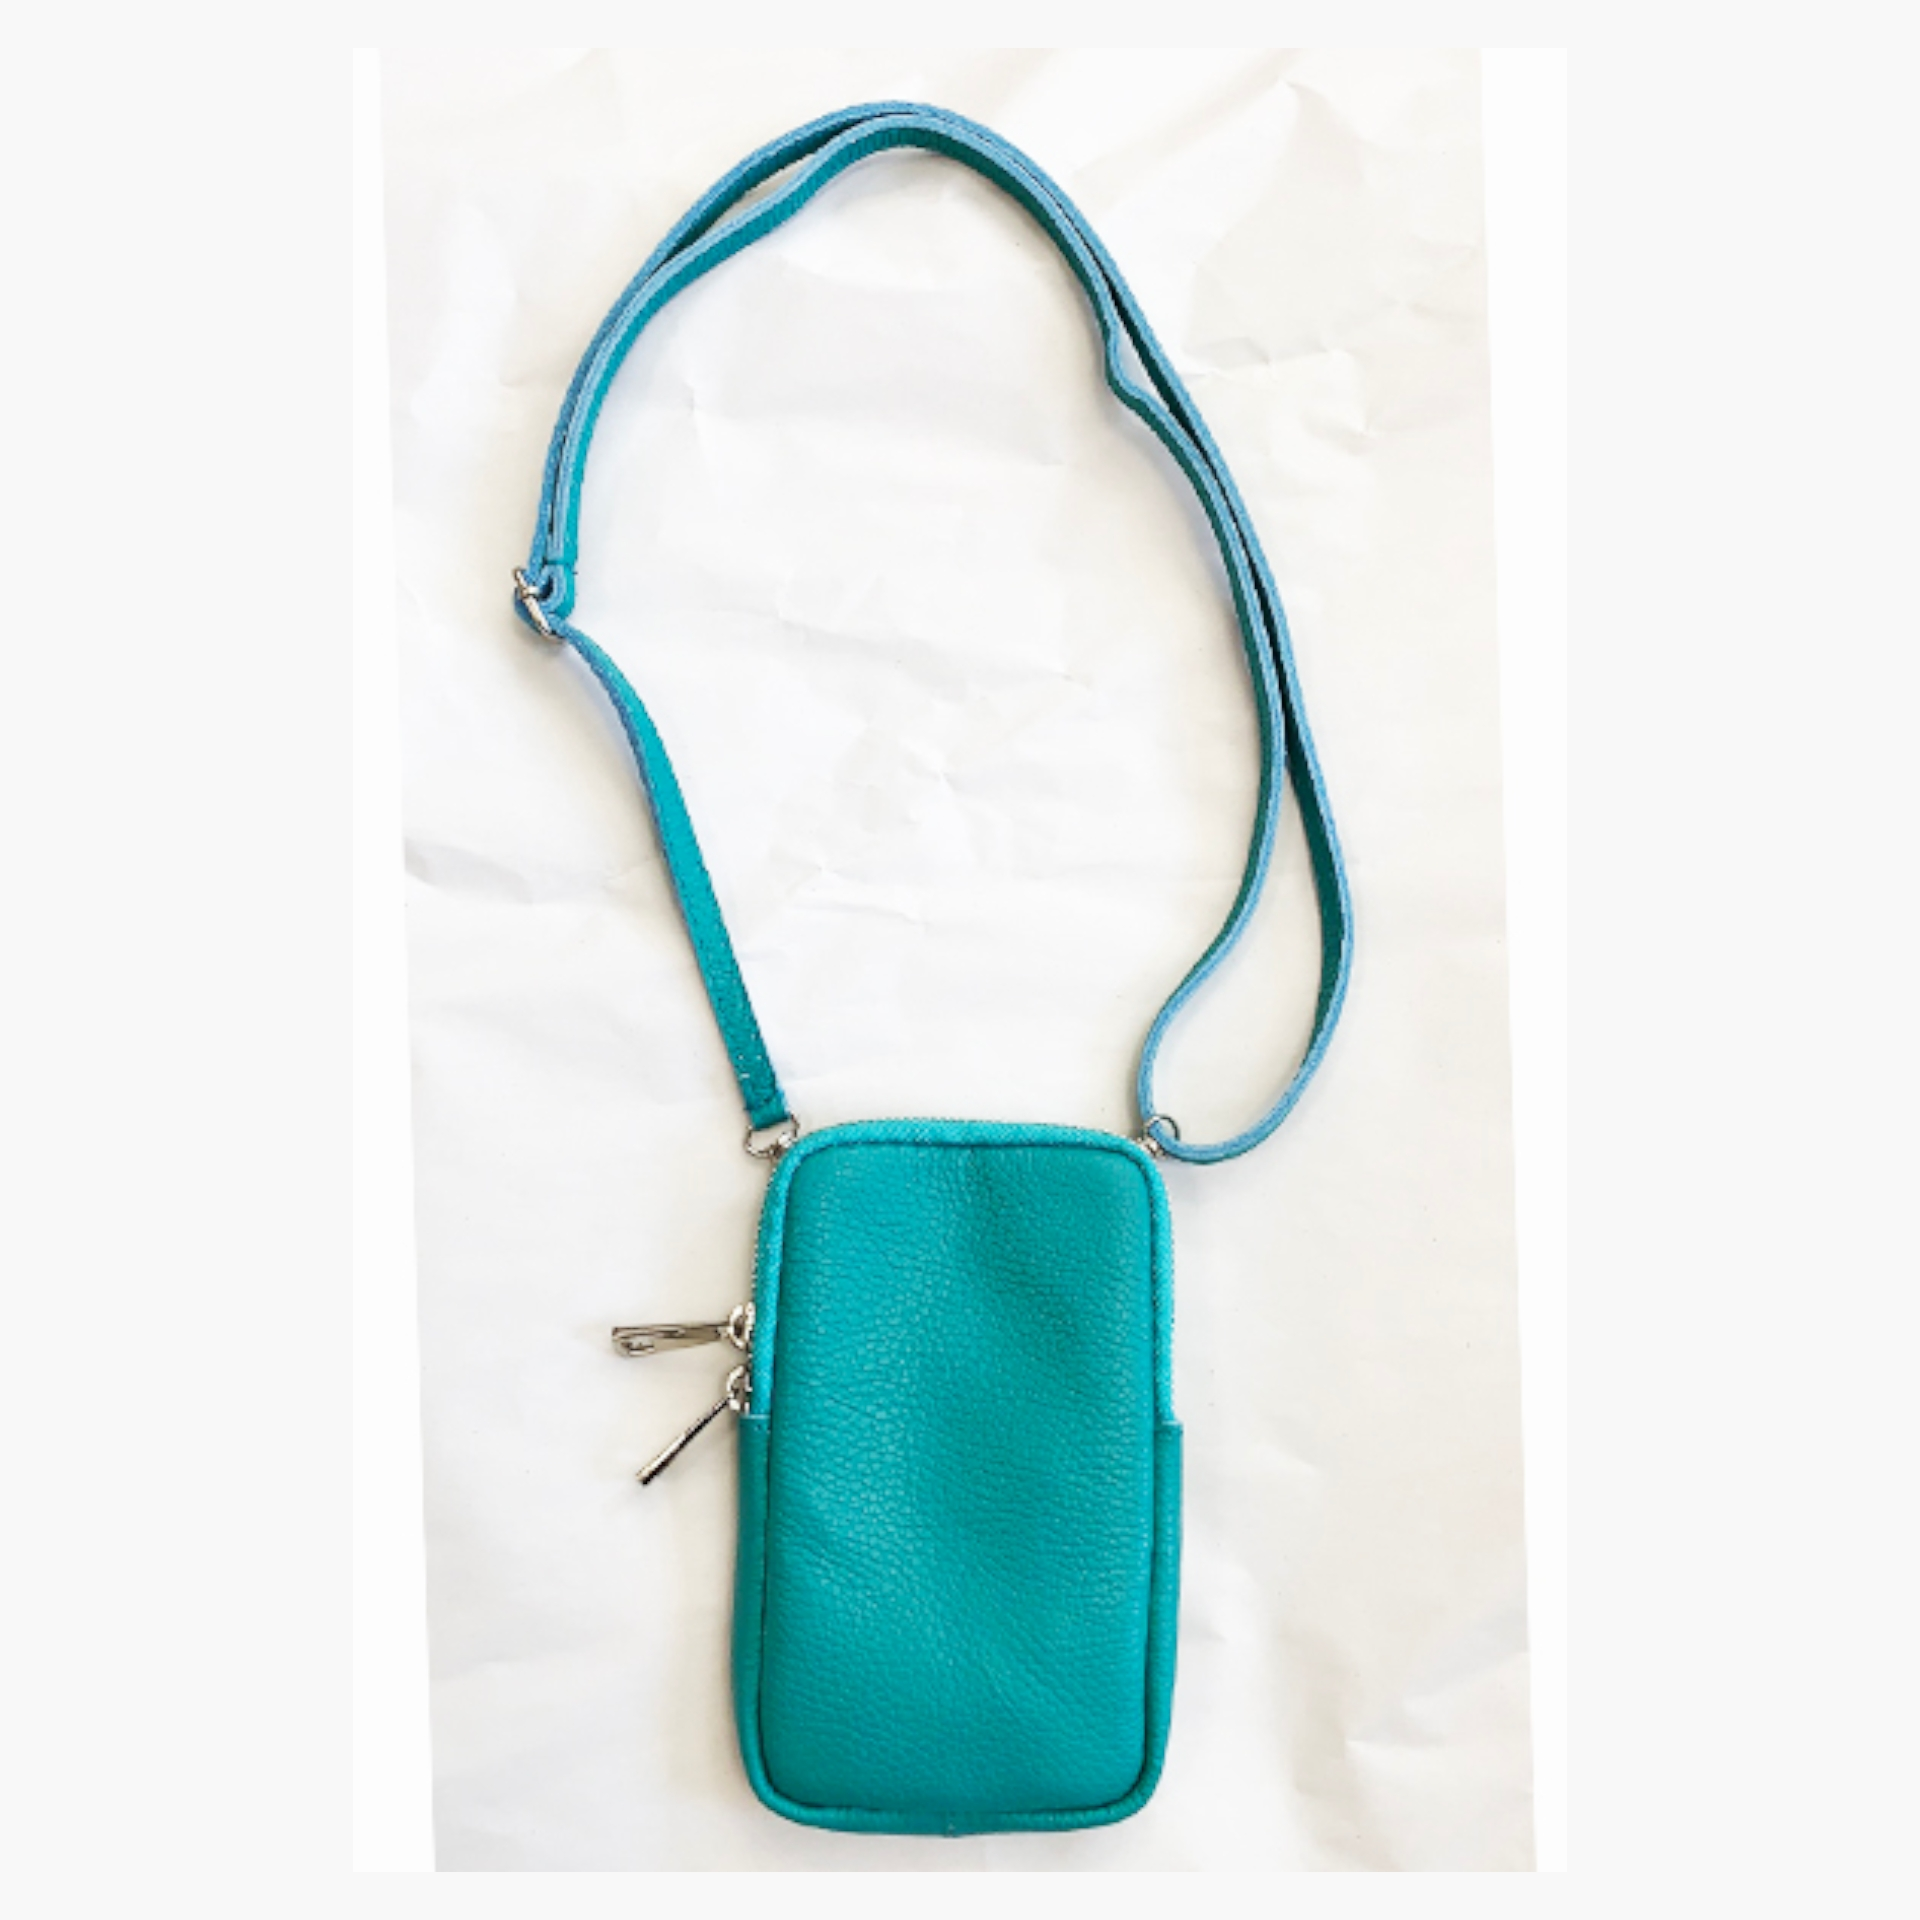 Real Leather Cross Body Mobile Pouch - Turquoise